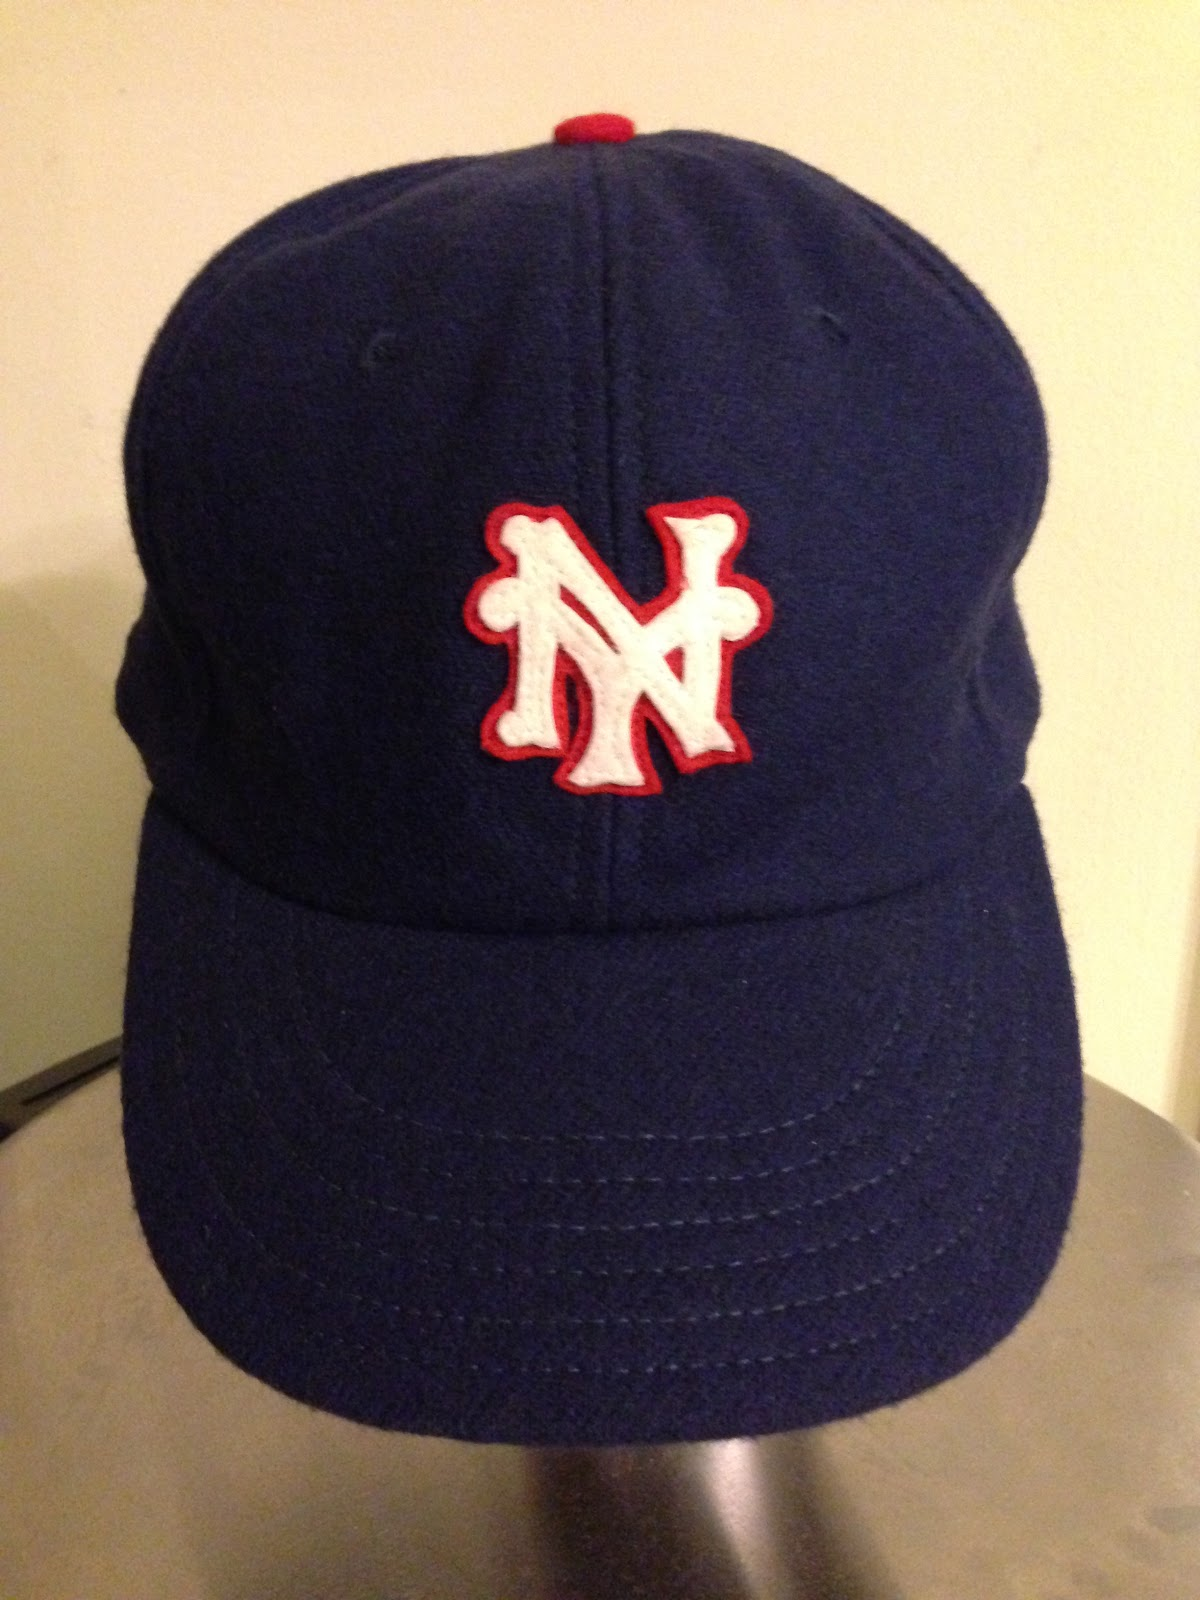 Cooperstown Ball Cap Co Caps 1940 New York Giants